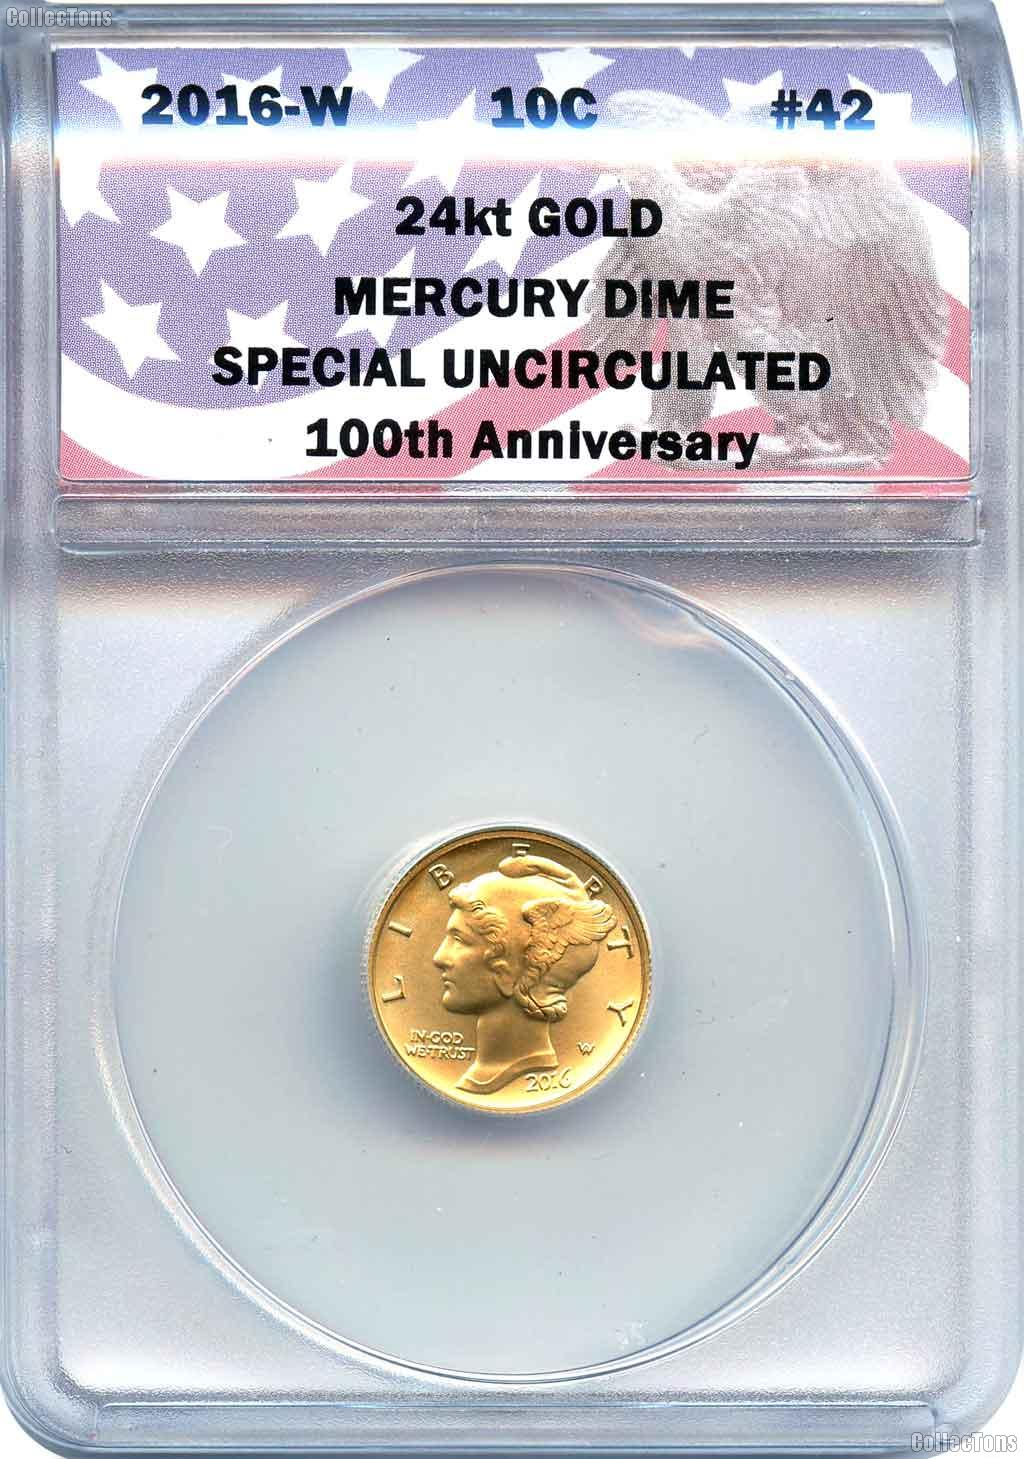 CollecTons Keepers #42: 2016-W Gold Mercury Dime Certified in Exclusive ANACS Special Uncirculated Holder